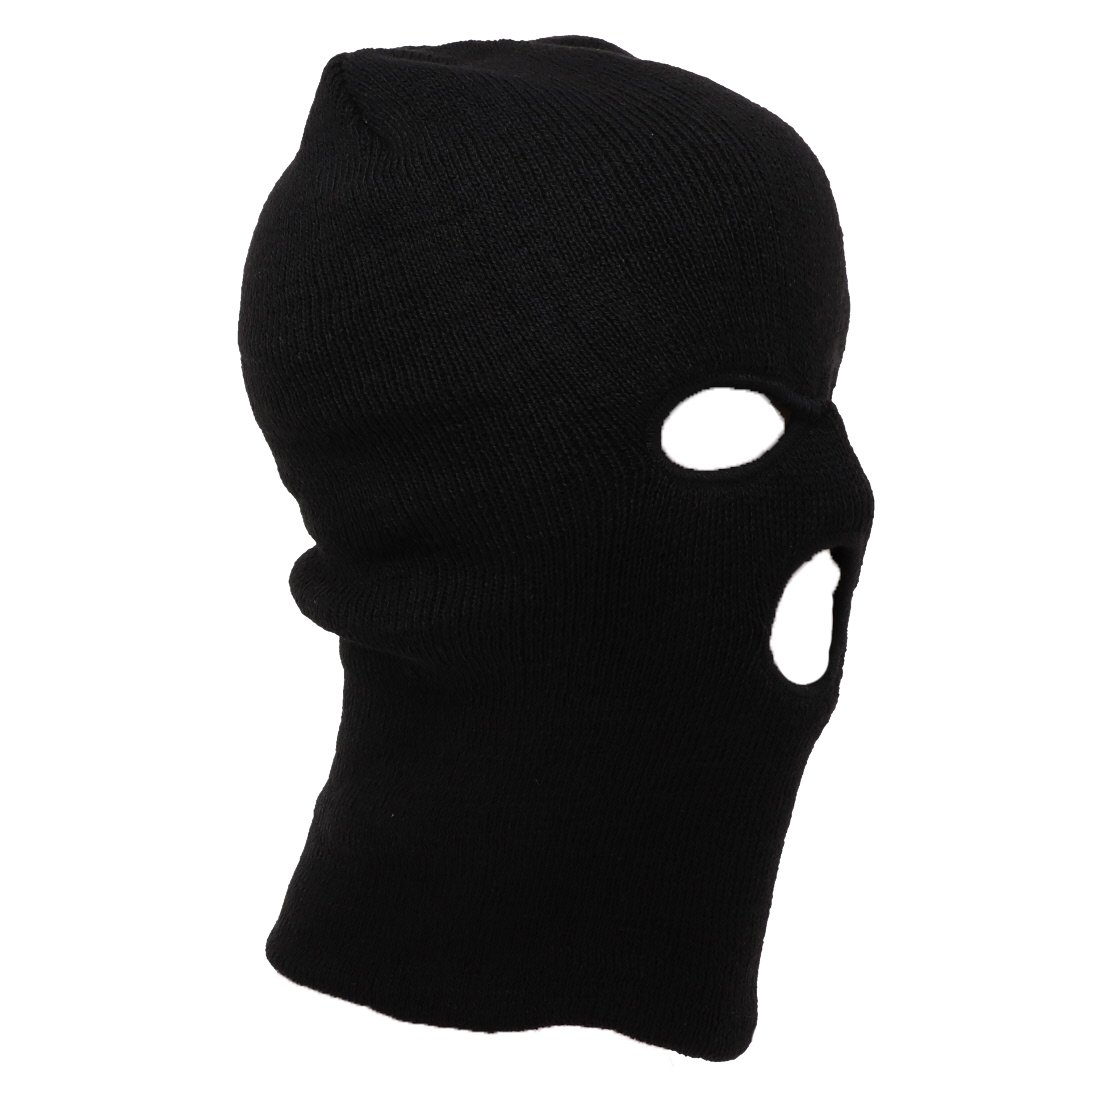 Motique Accessories Unisex Balaclava Face Mask Adult Ski Mask One Size MTSM0001OV